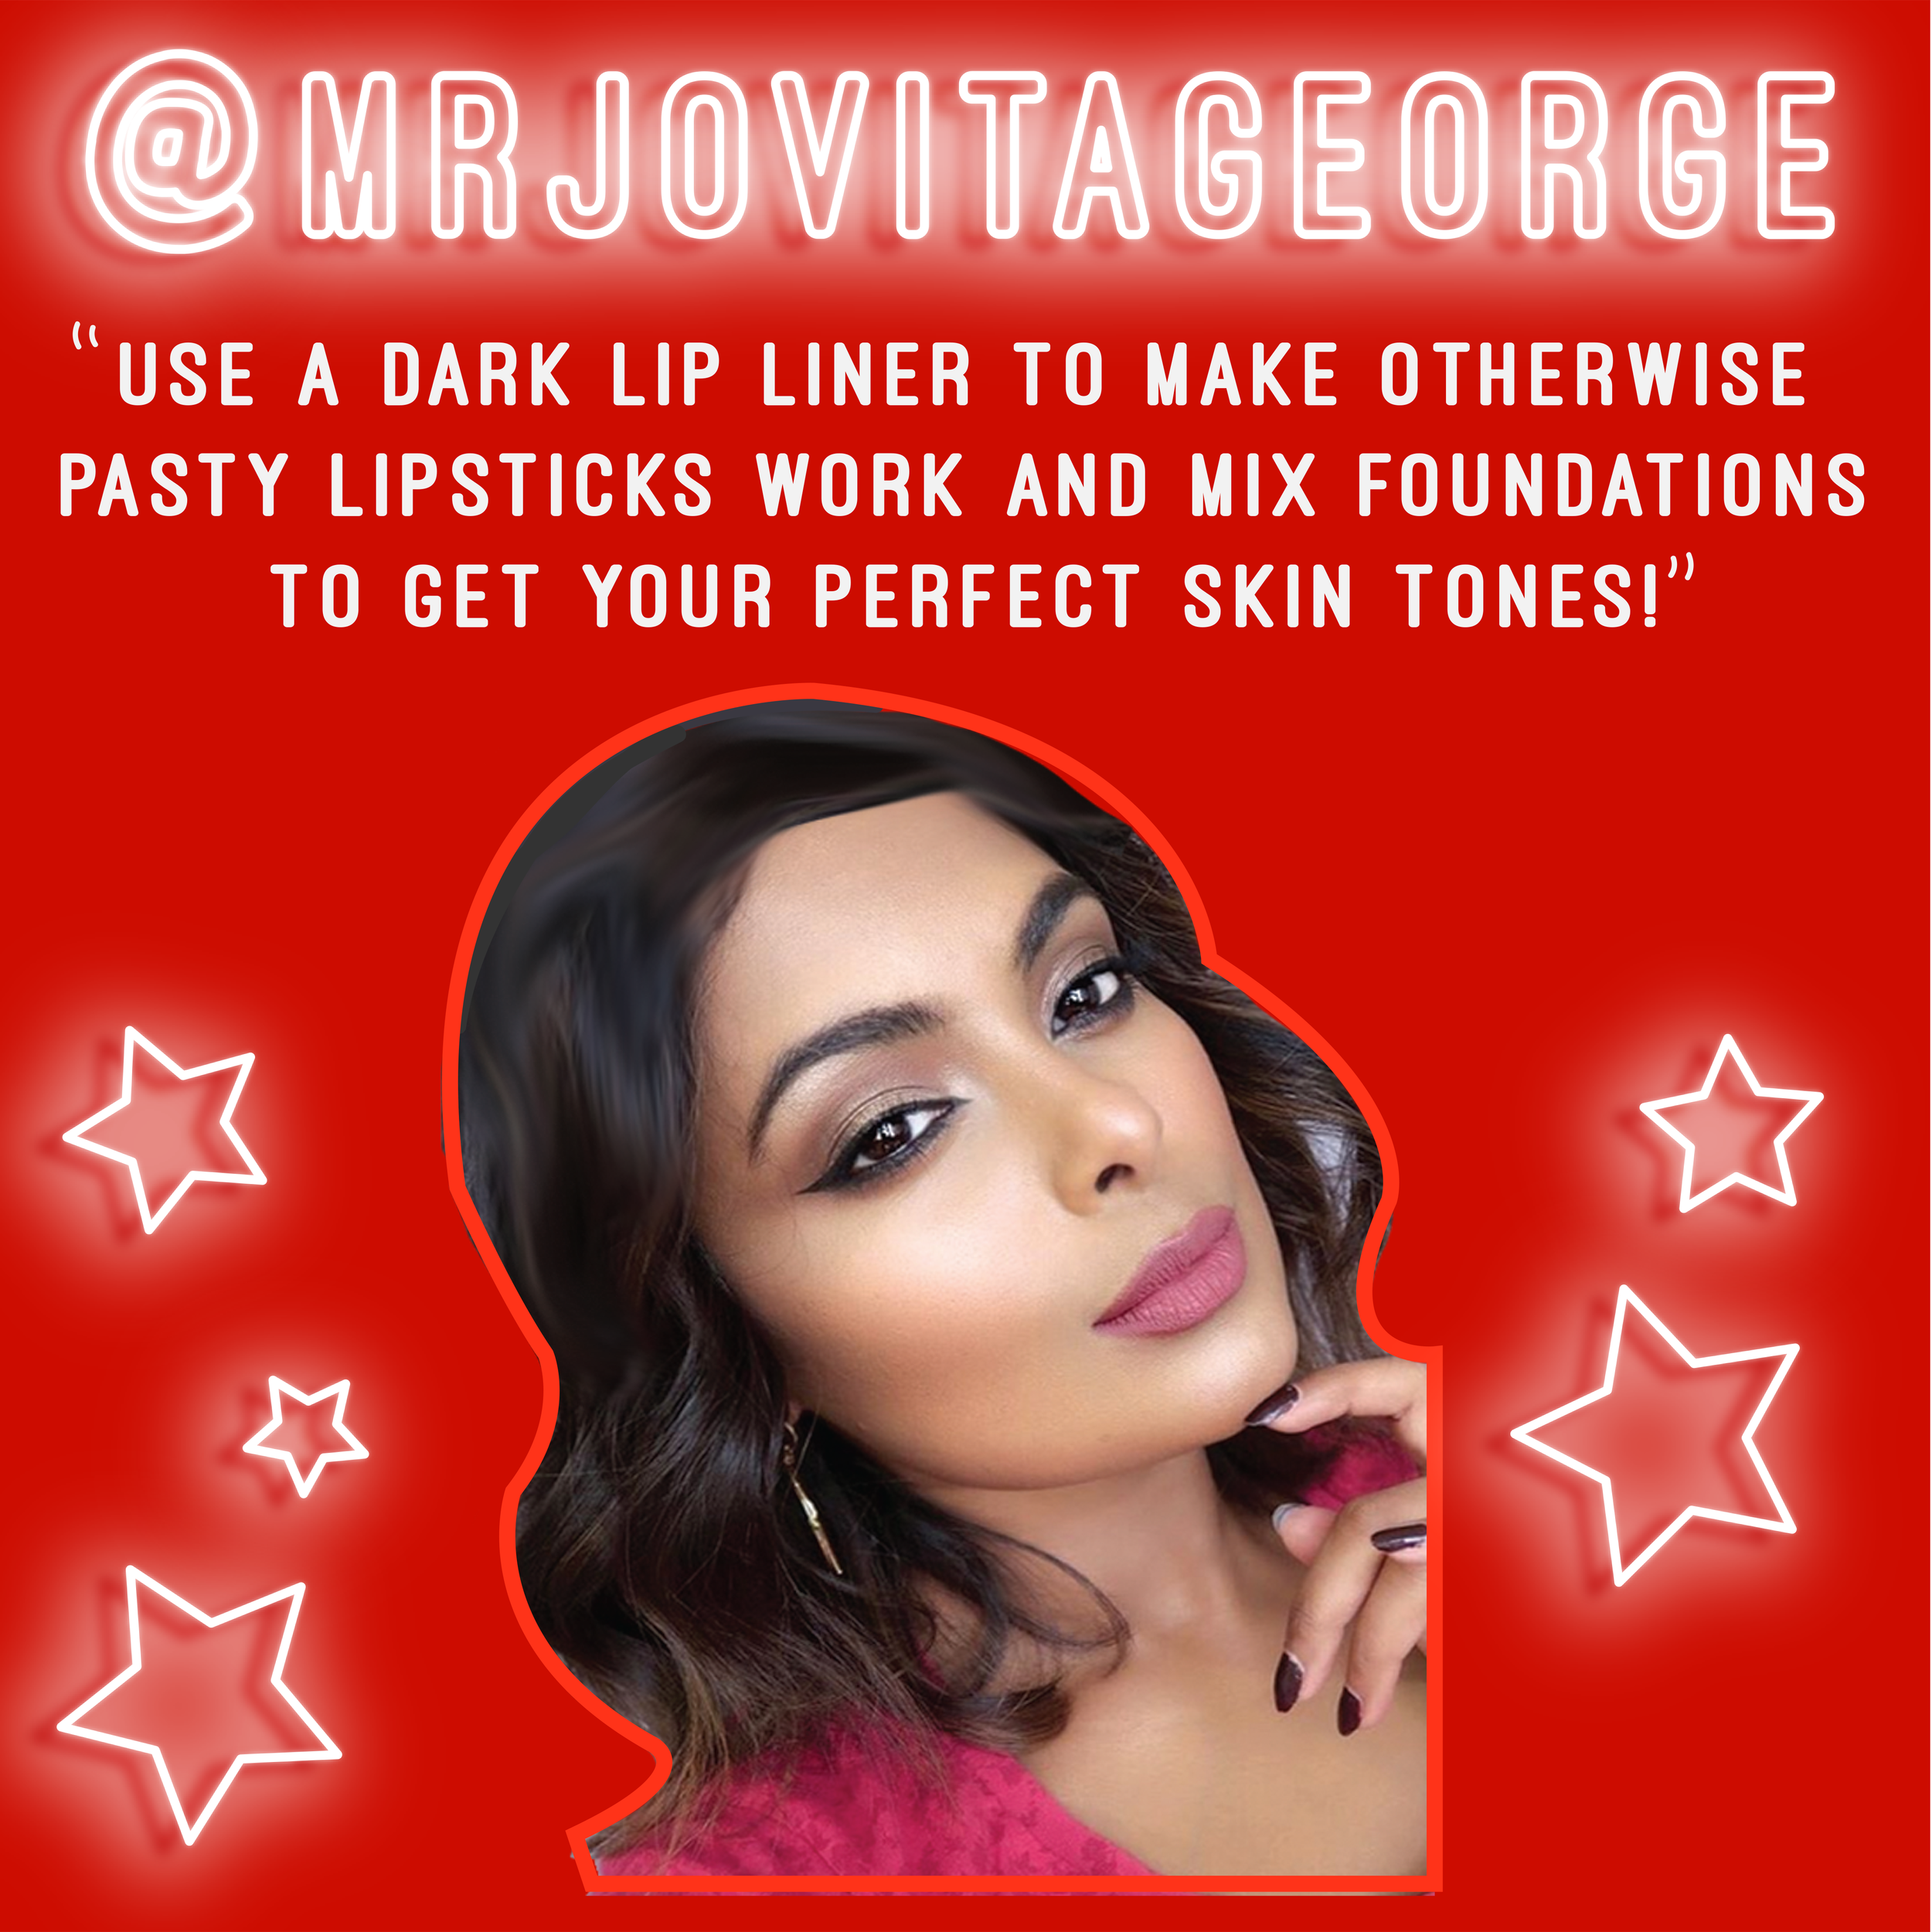 """""""Use a dark lip liner to make otherwise pasty lipsticks work and mix foundations to get your perfect skin tone!"""" - @Mrjovitageorge"""